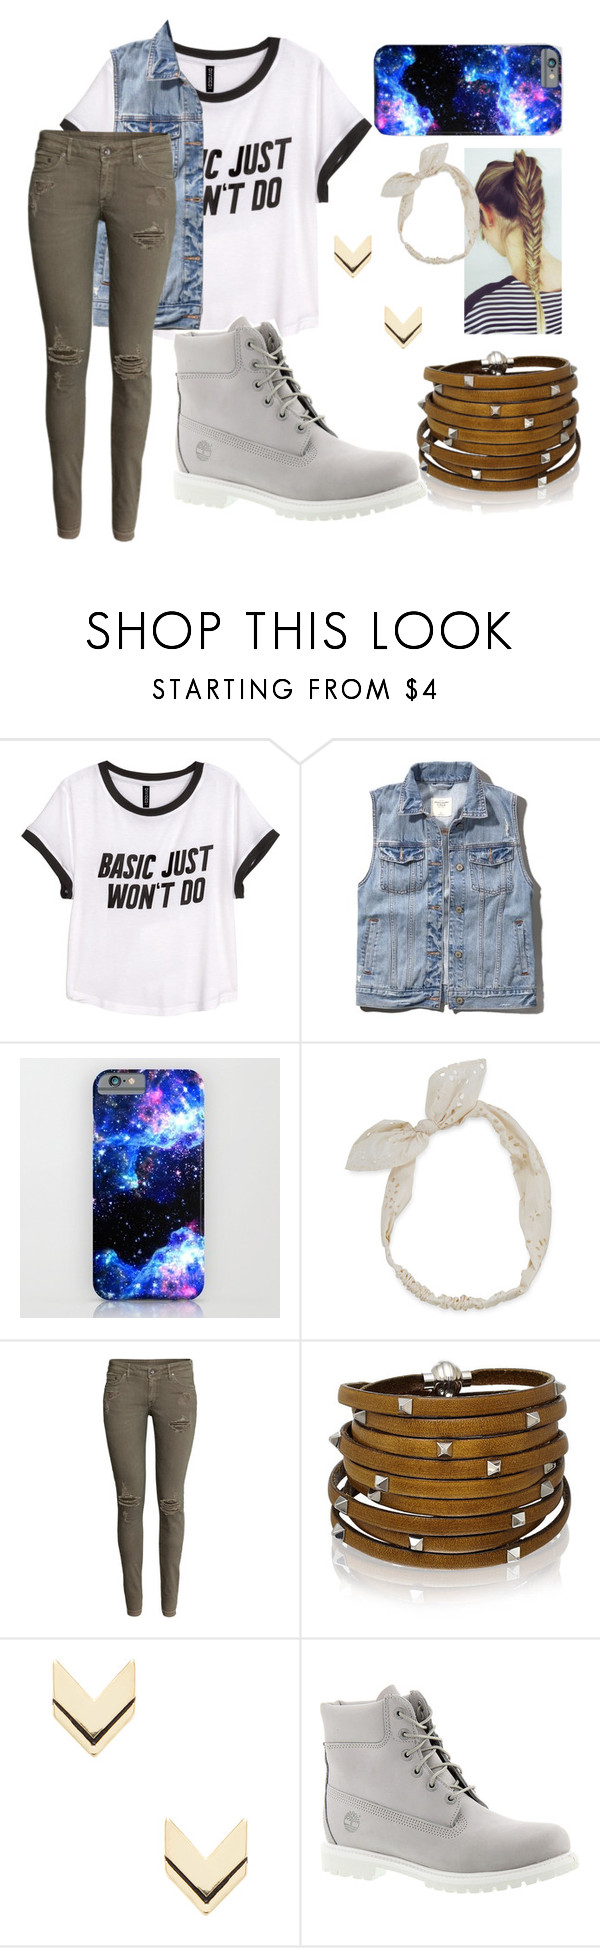 """""""Alphie 2"""" by theblueraider ❤ liked on Polyvore featuring H&M, Abercrombie & Fitch, Carole, Sif Jakobs Jewellery, Leslie Danzis and Timberland"""